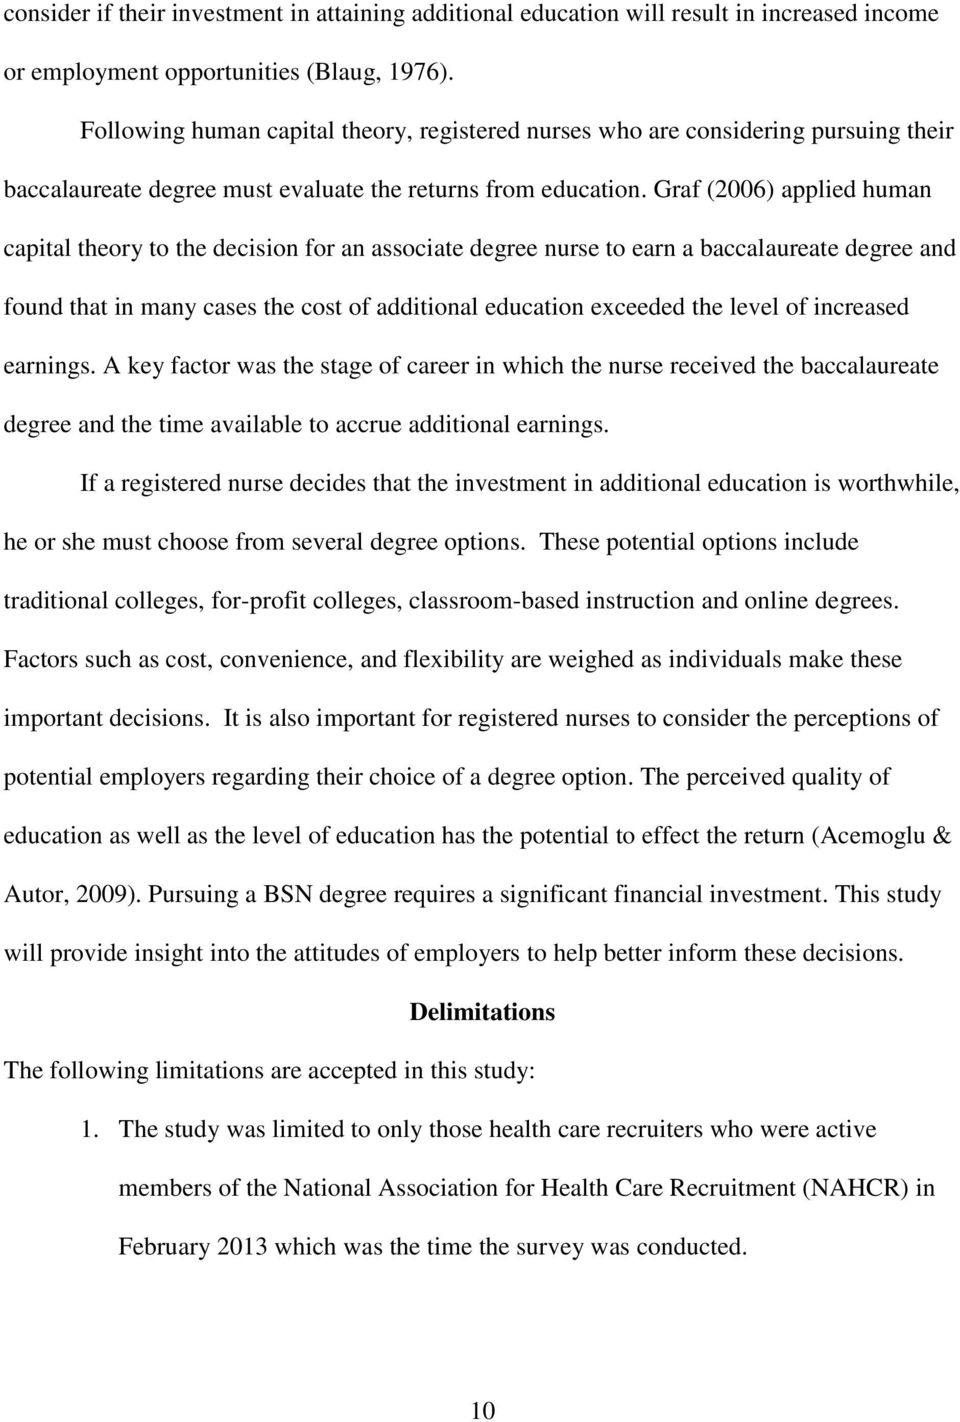 Graf (2006) applied human capital theory to the decision for an associate degree nurse to earn a baccalaureate degree and found that in many cases the cost of additional education exceeded the level